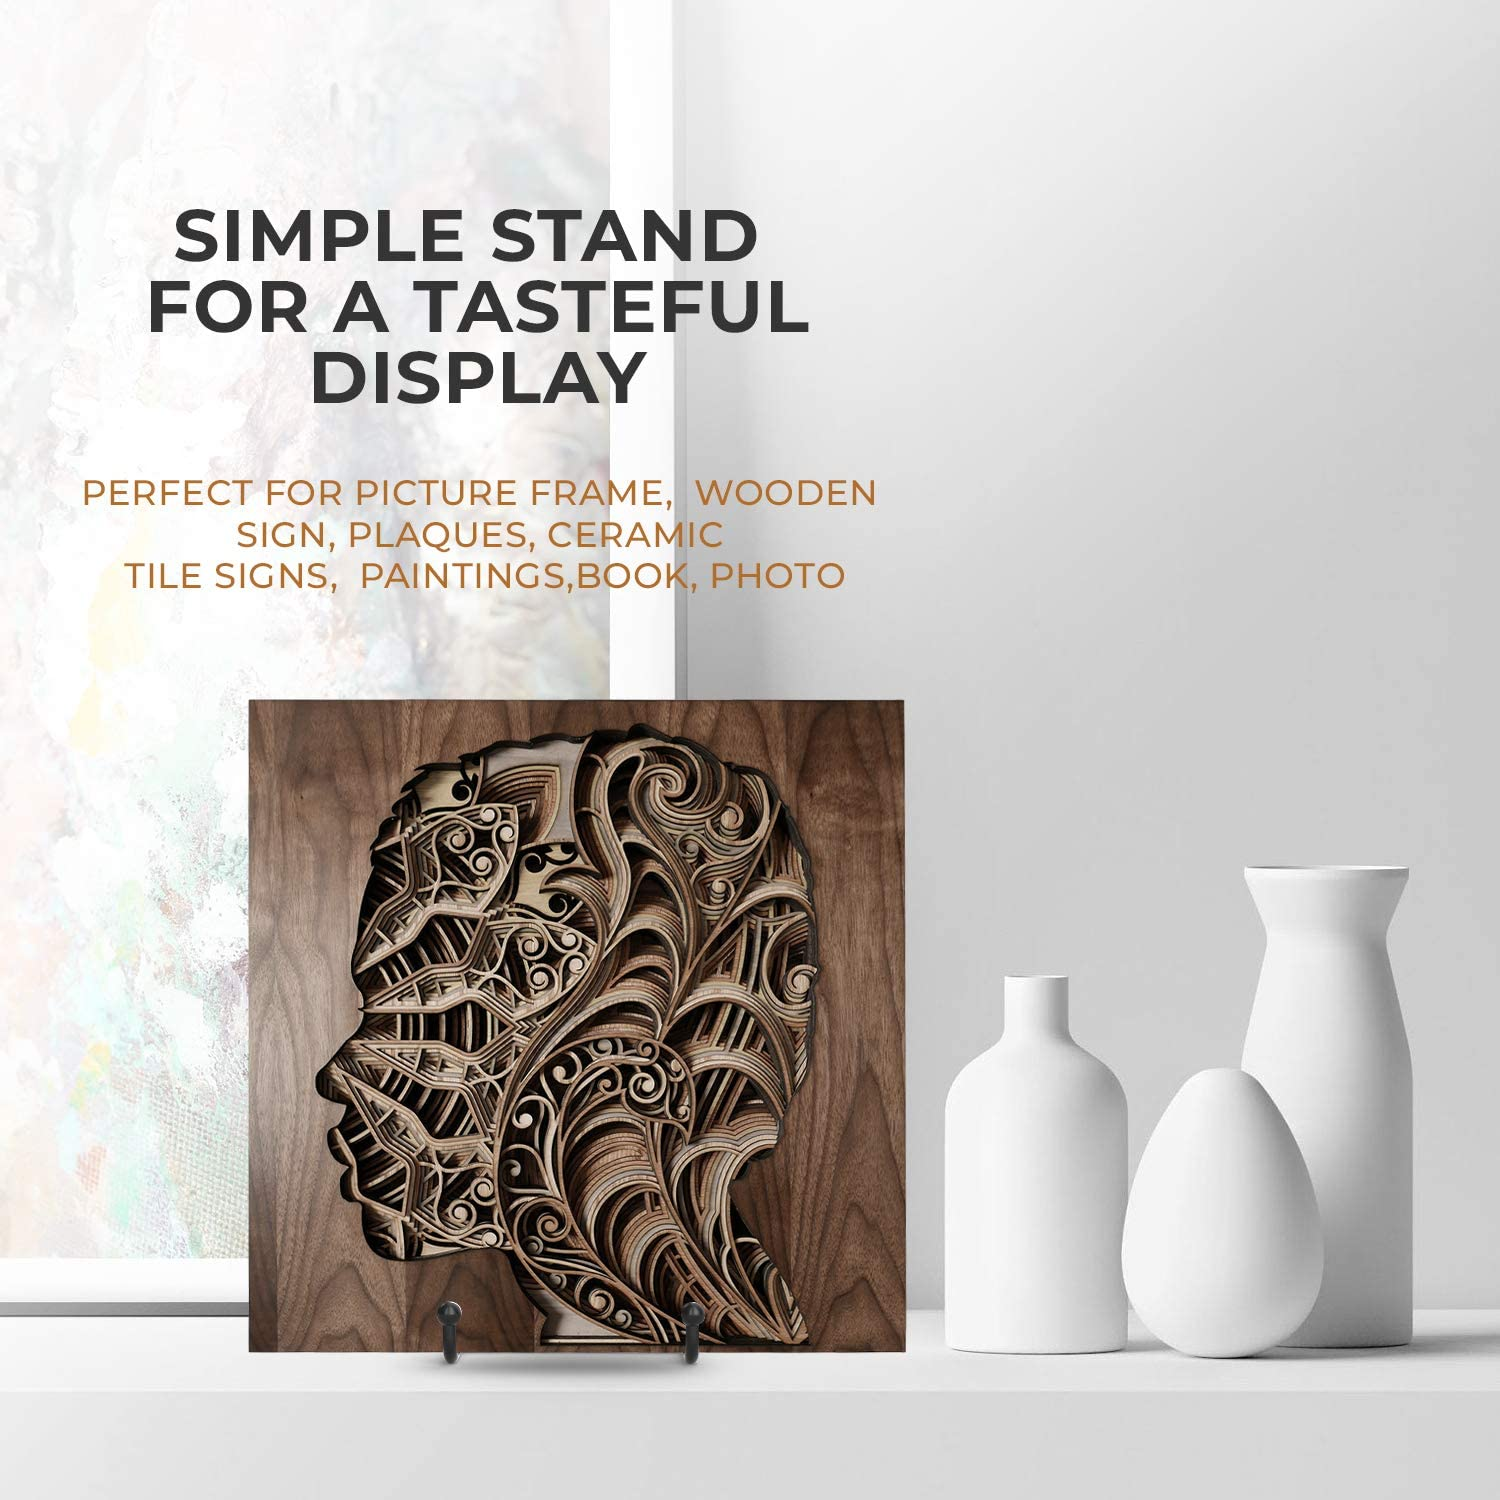 2 Pack Decorative Plate 6 Inch Plate Holder Display Stand Photo Easel Metal Frame Holder Stand for Picture TR-LIFE Plate Stands for Display Book